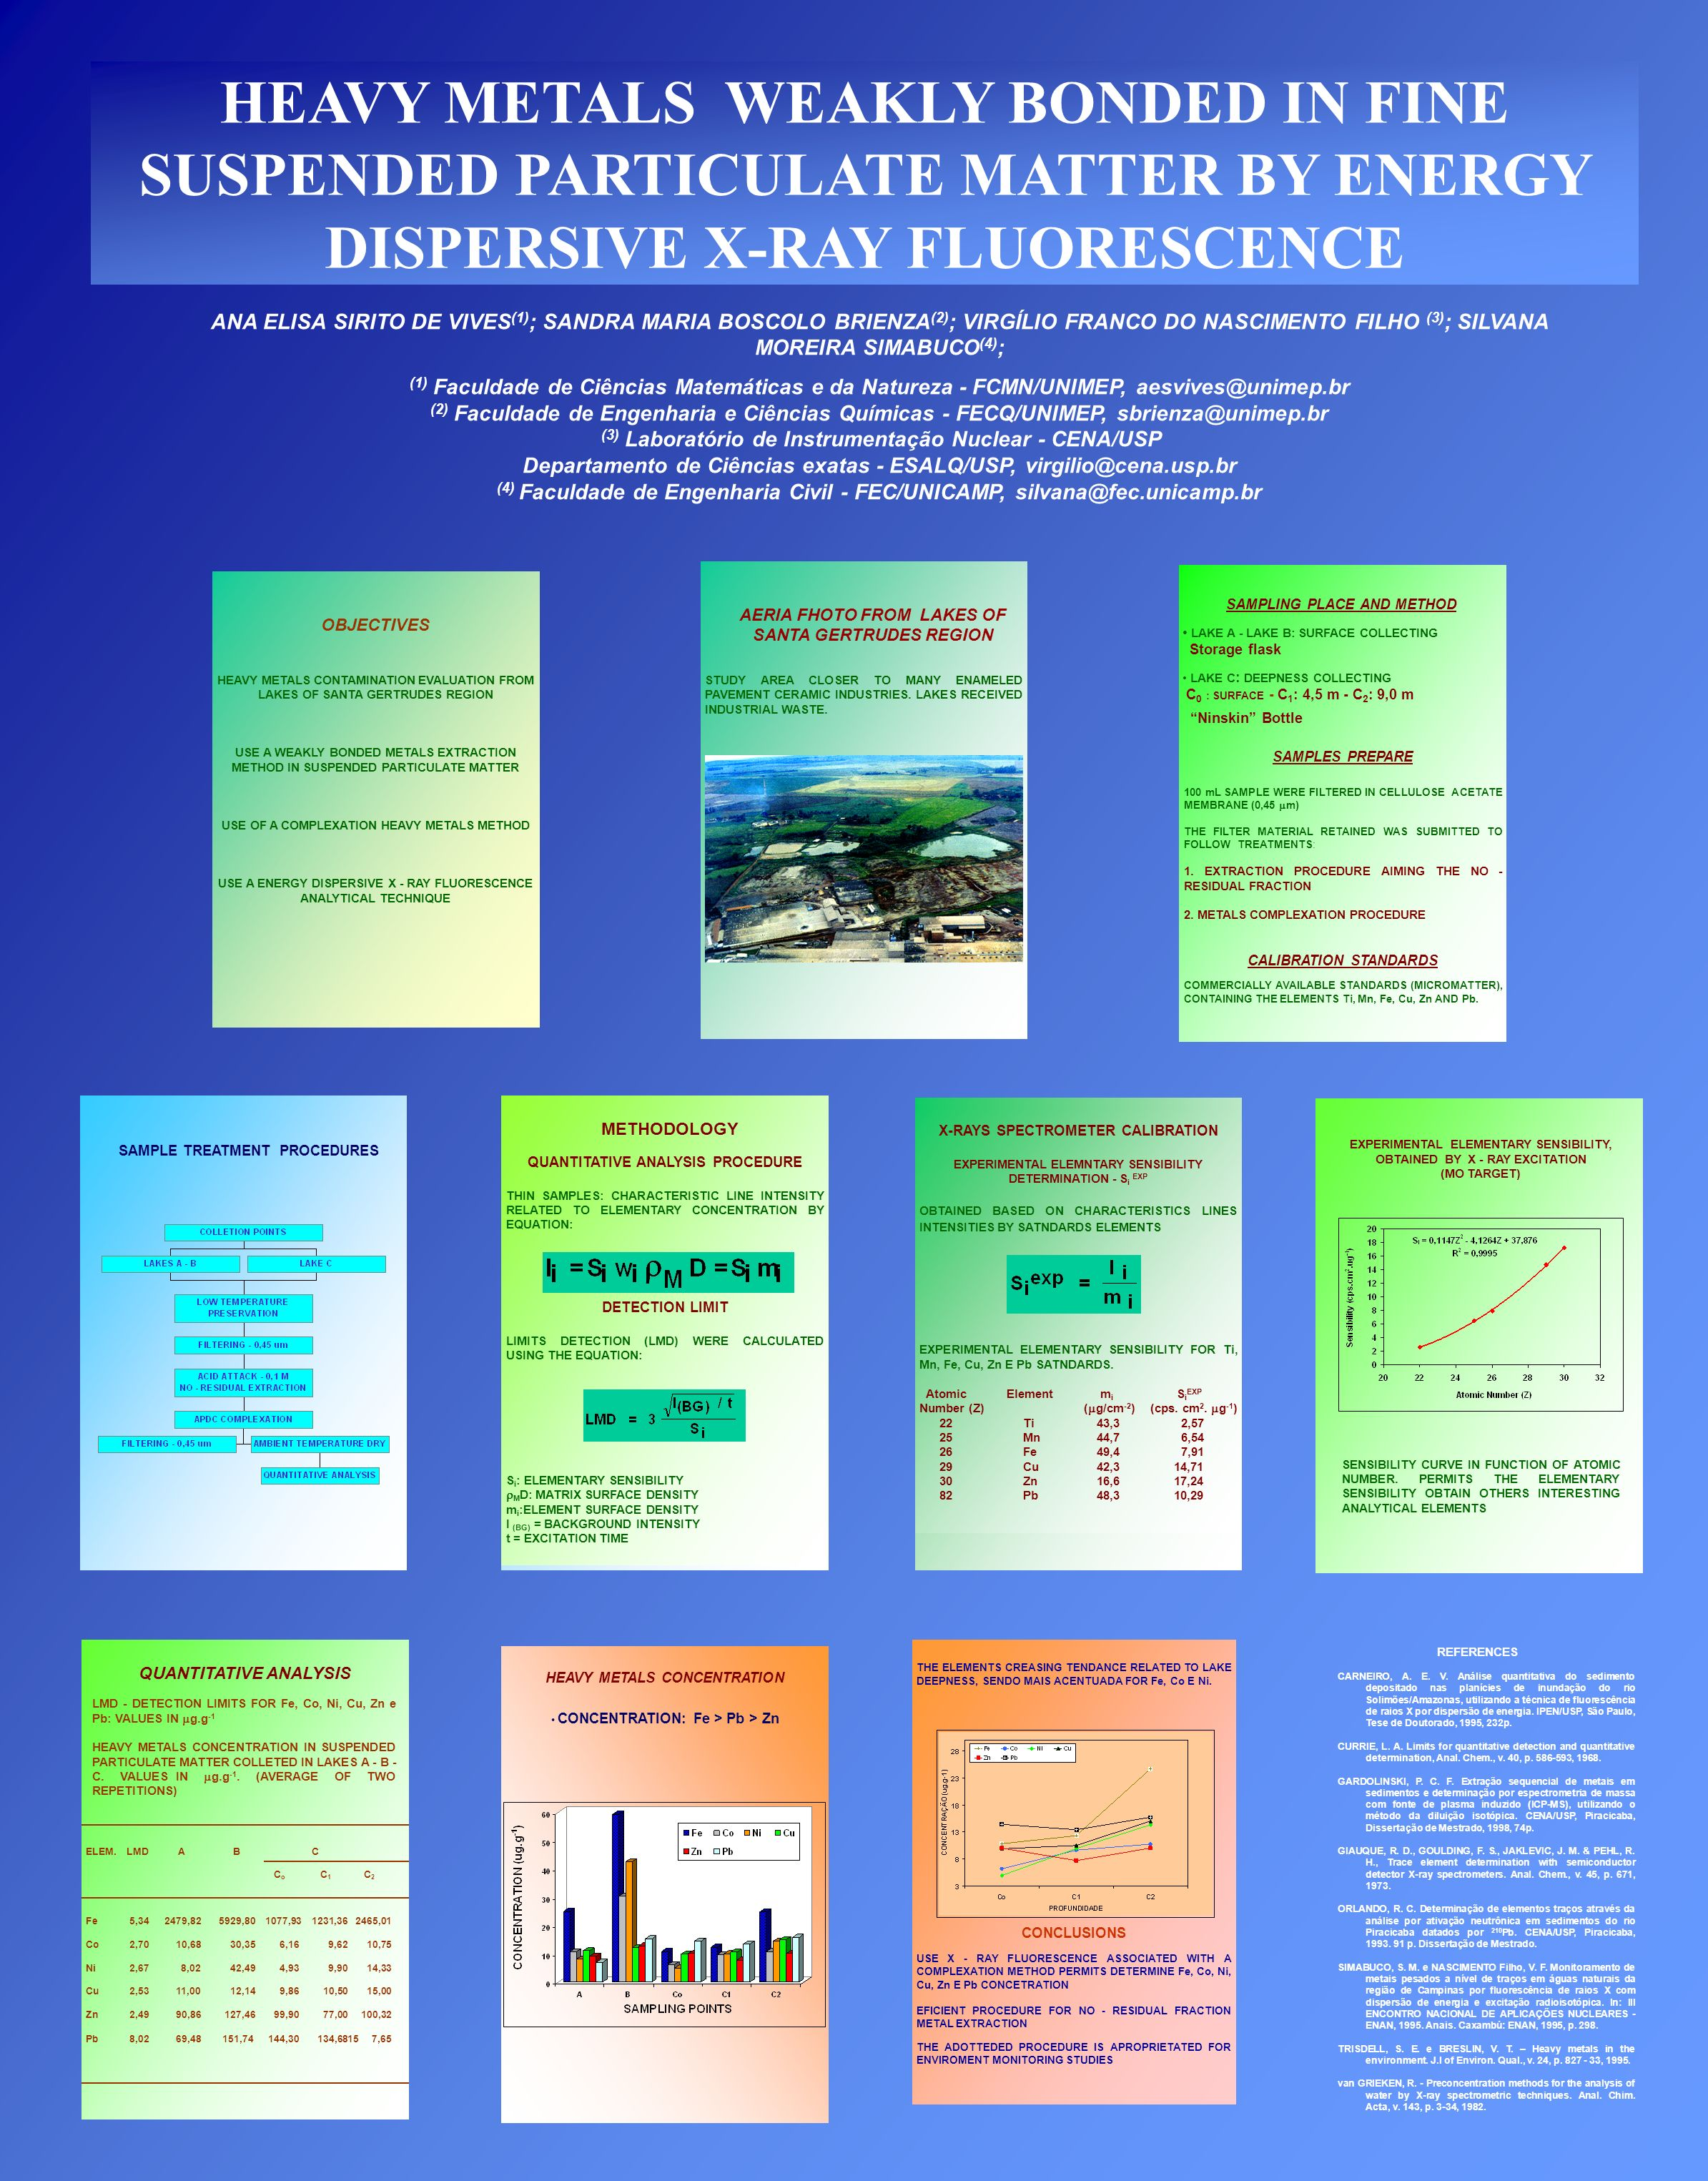 METHODOLOGY QUANTITATIVE ANALYSIS PROCEDURE THIN SAMPLES: CHARACTERISTIC LINE INTENSITY RELATED TO ELEMENTARY CONCENTRATION BY EQUATION: DETECTION LIM